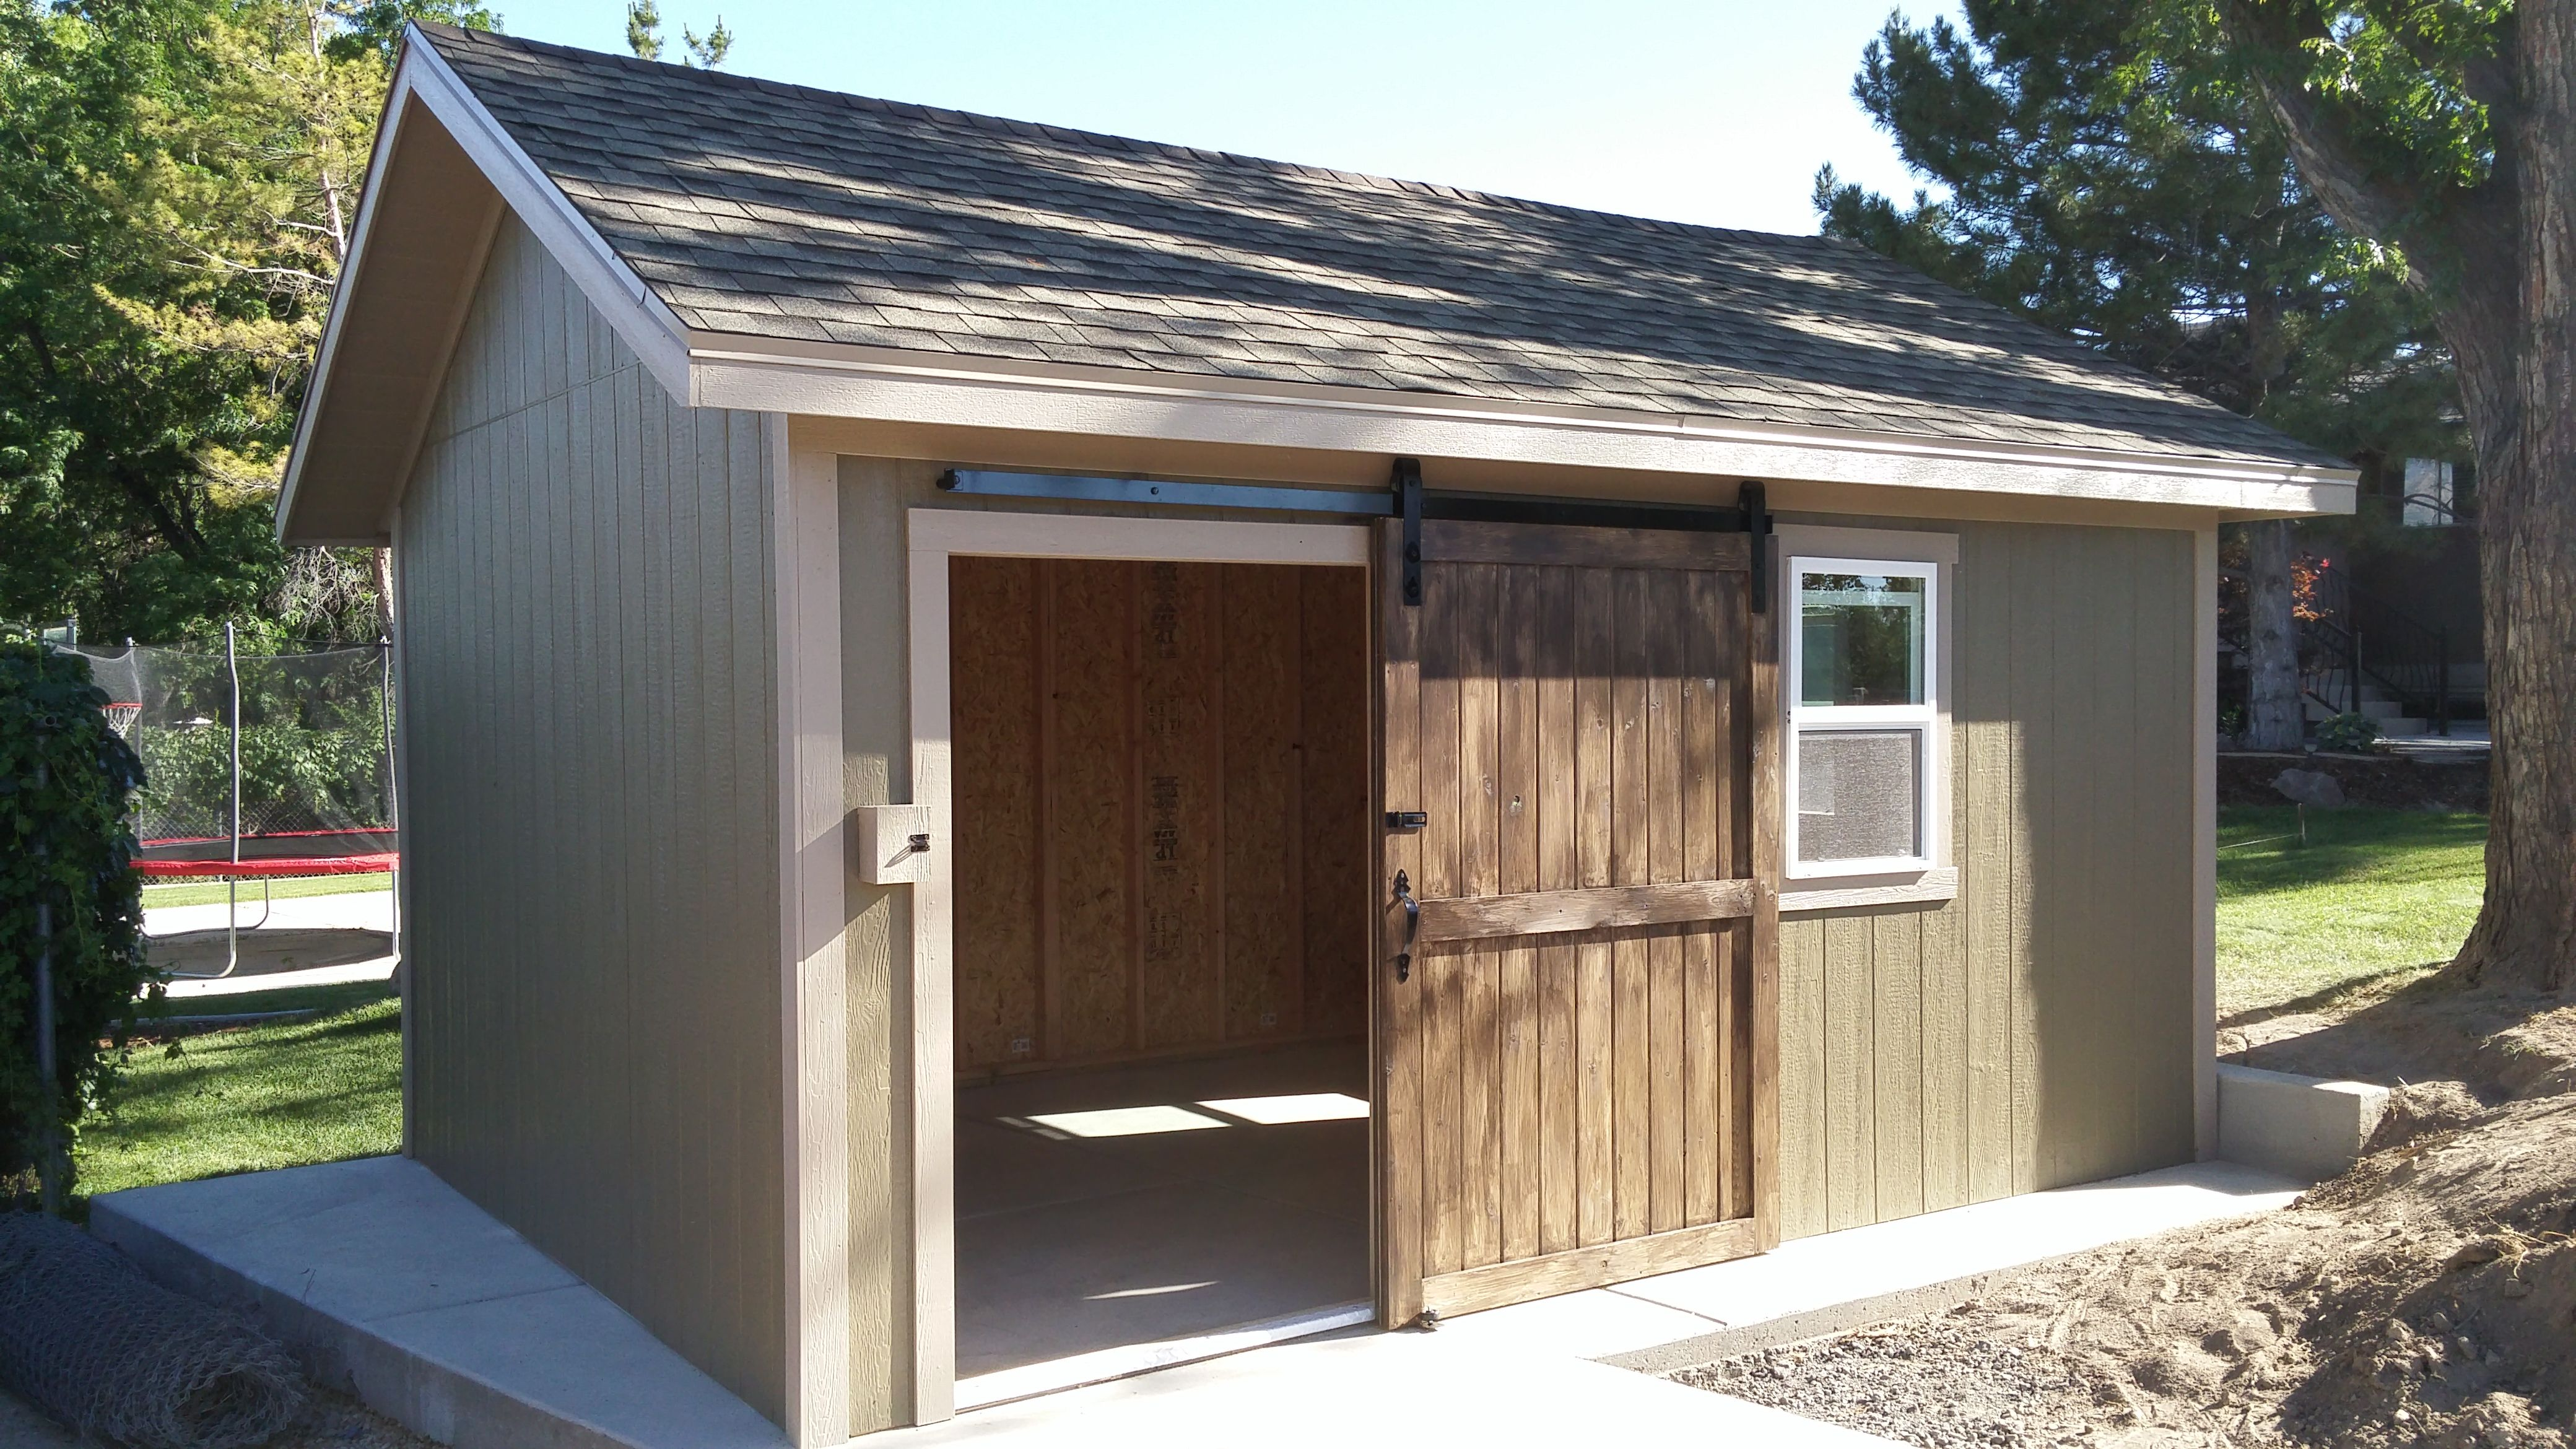 Cute green shed with sliding barn style door The Cabin